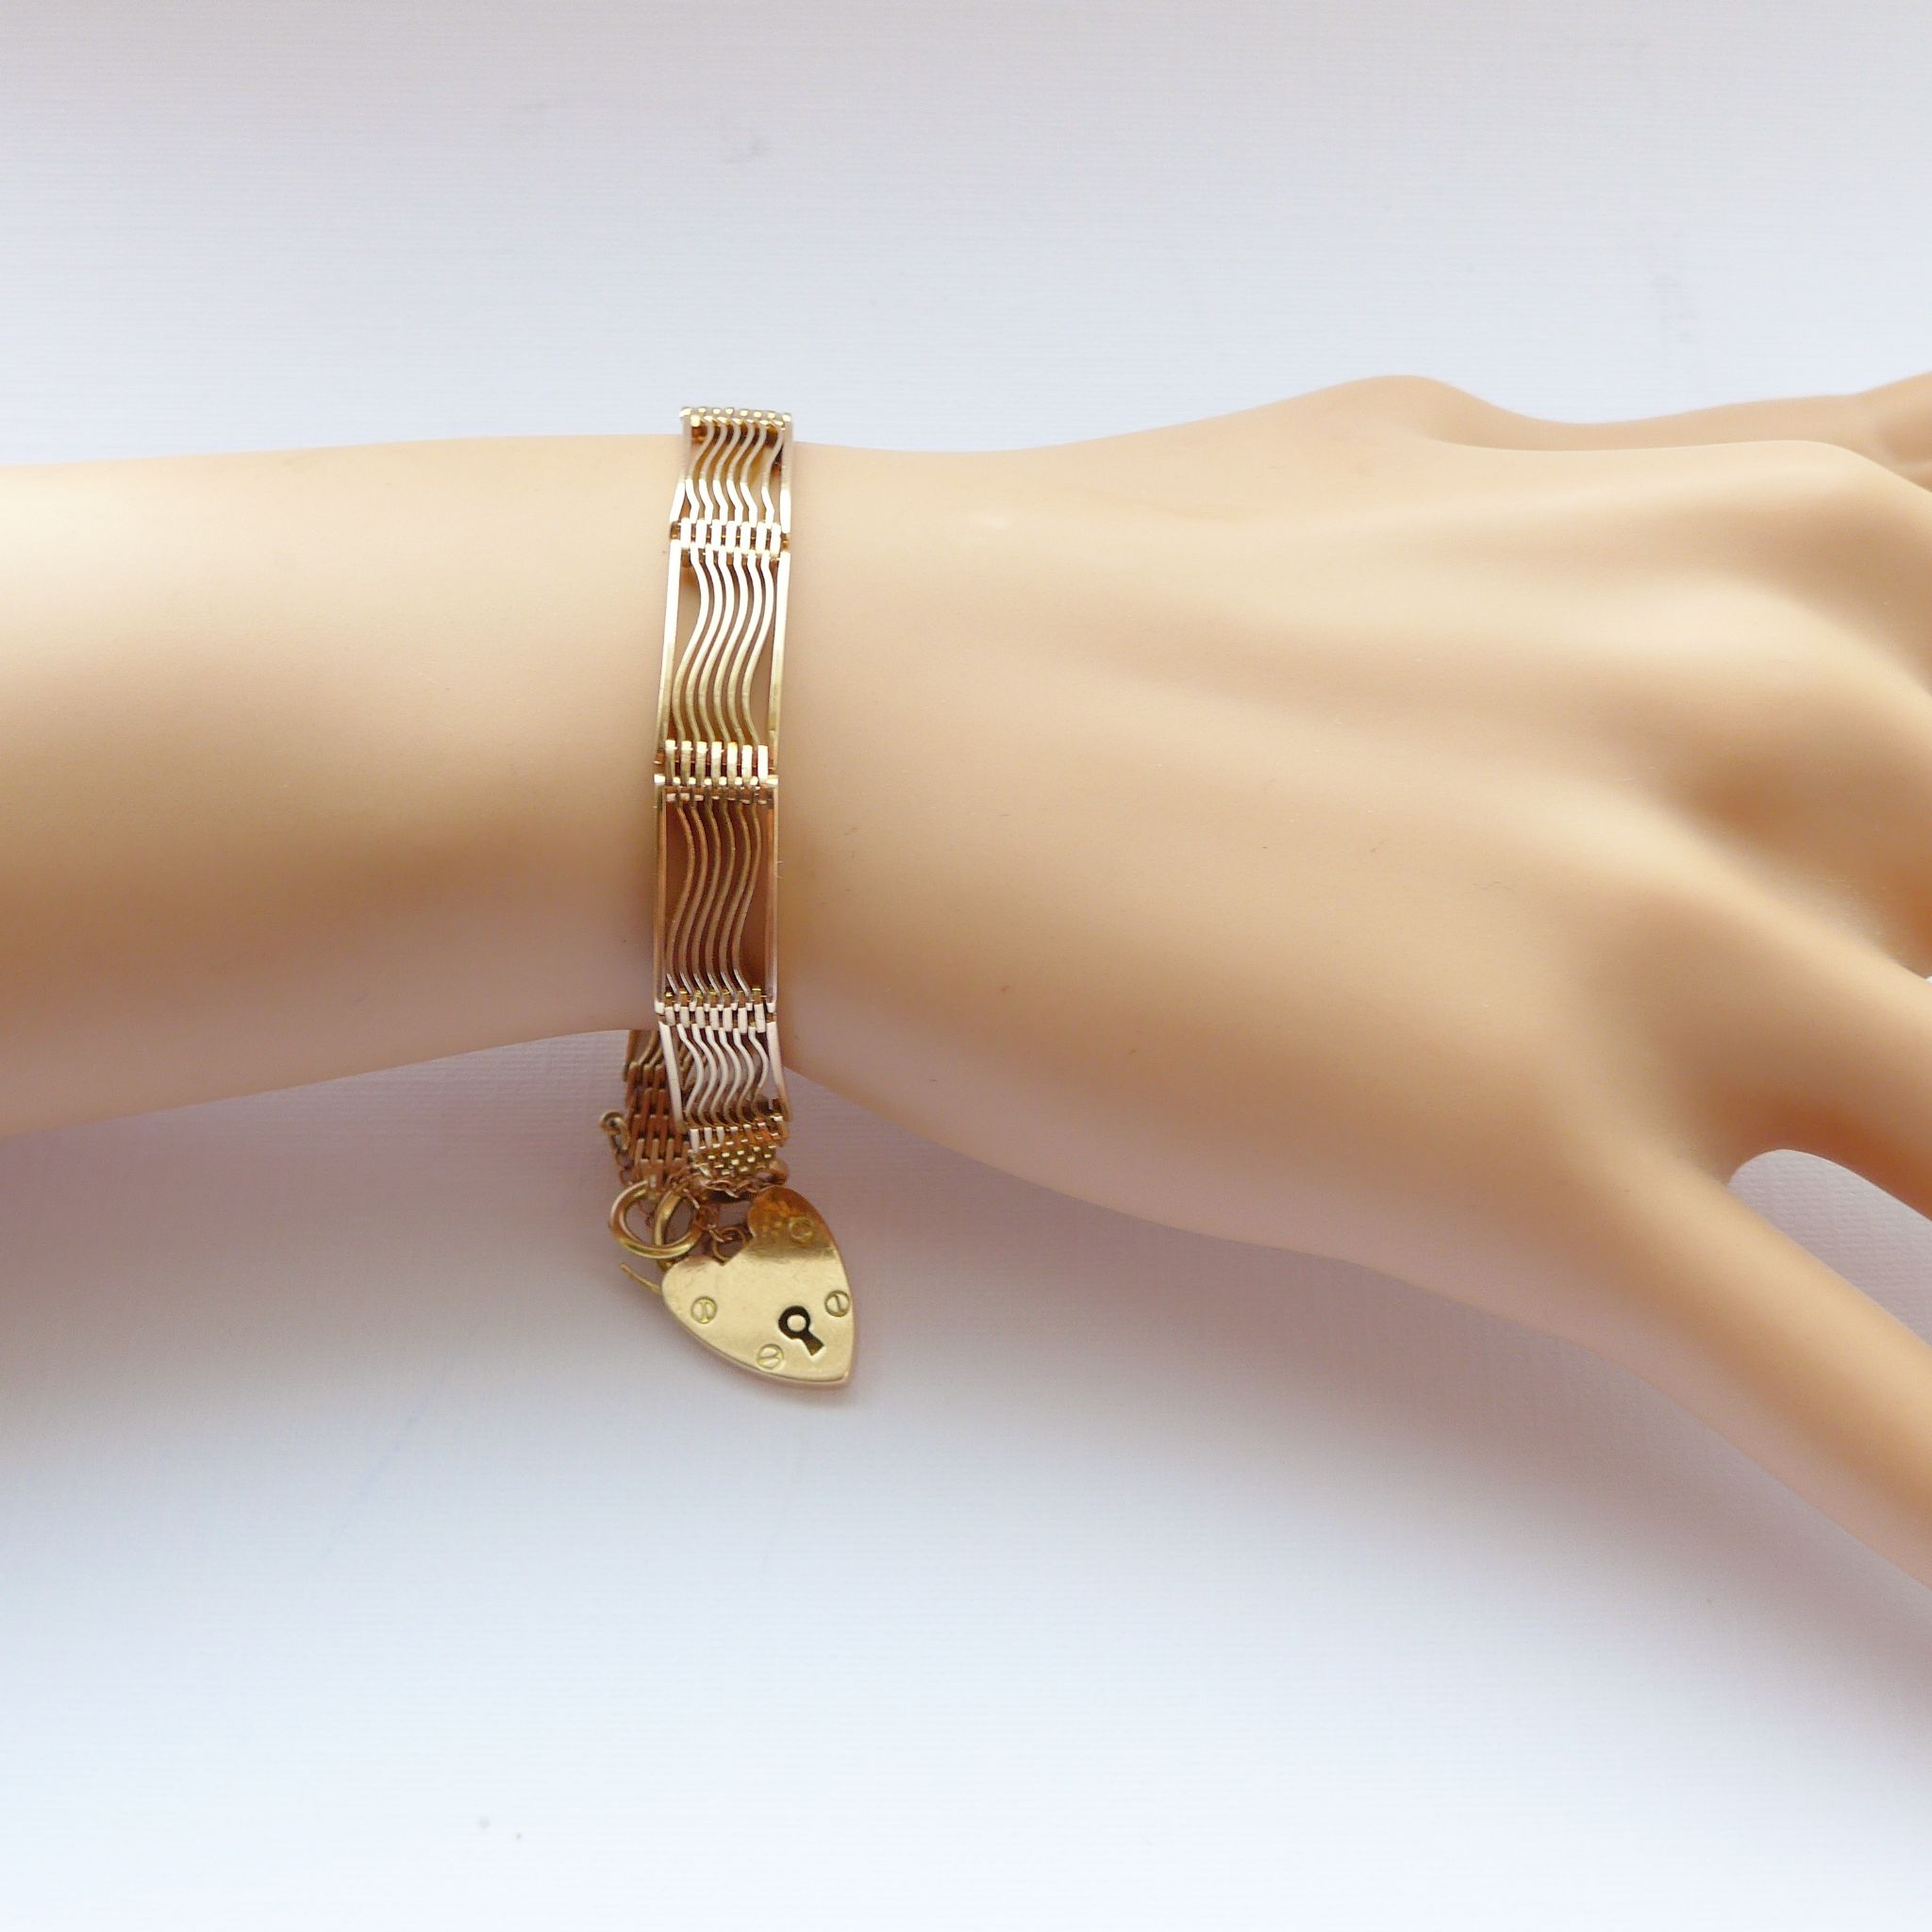 gold bracelet mustard seed jewelry floweringheartgoldbracelet product heart flowering